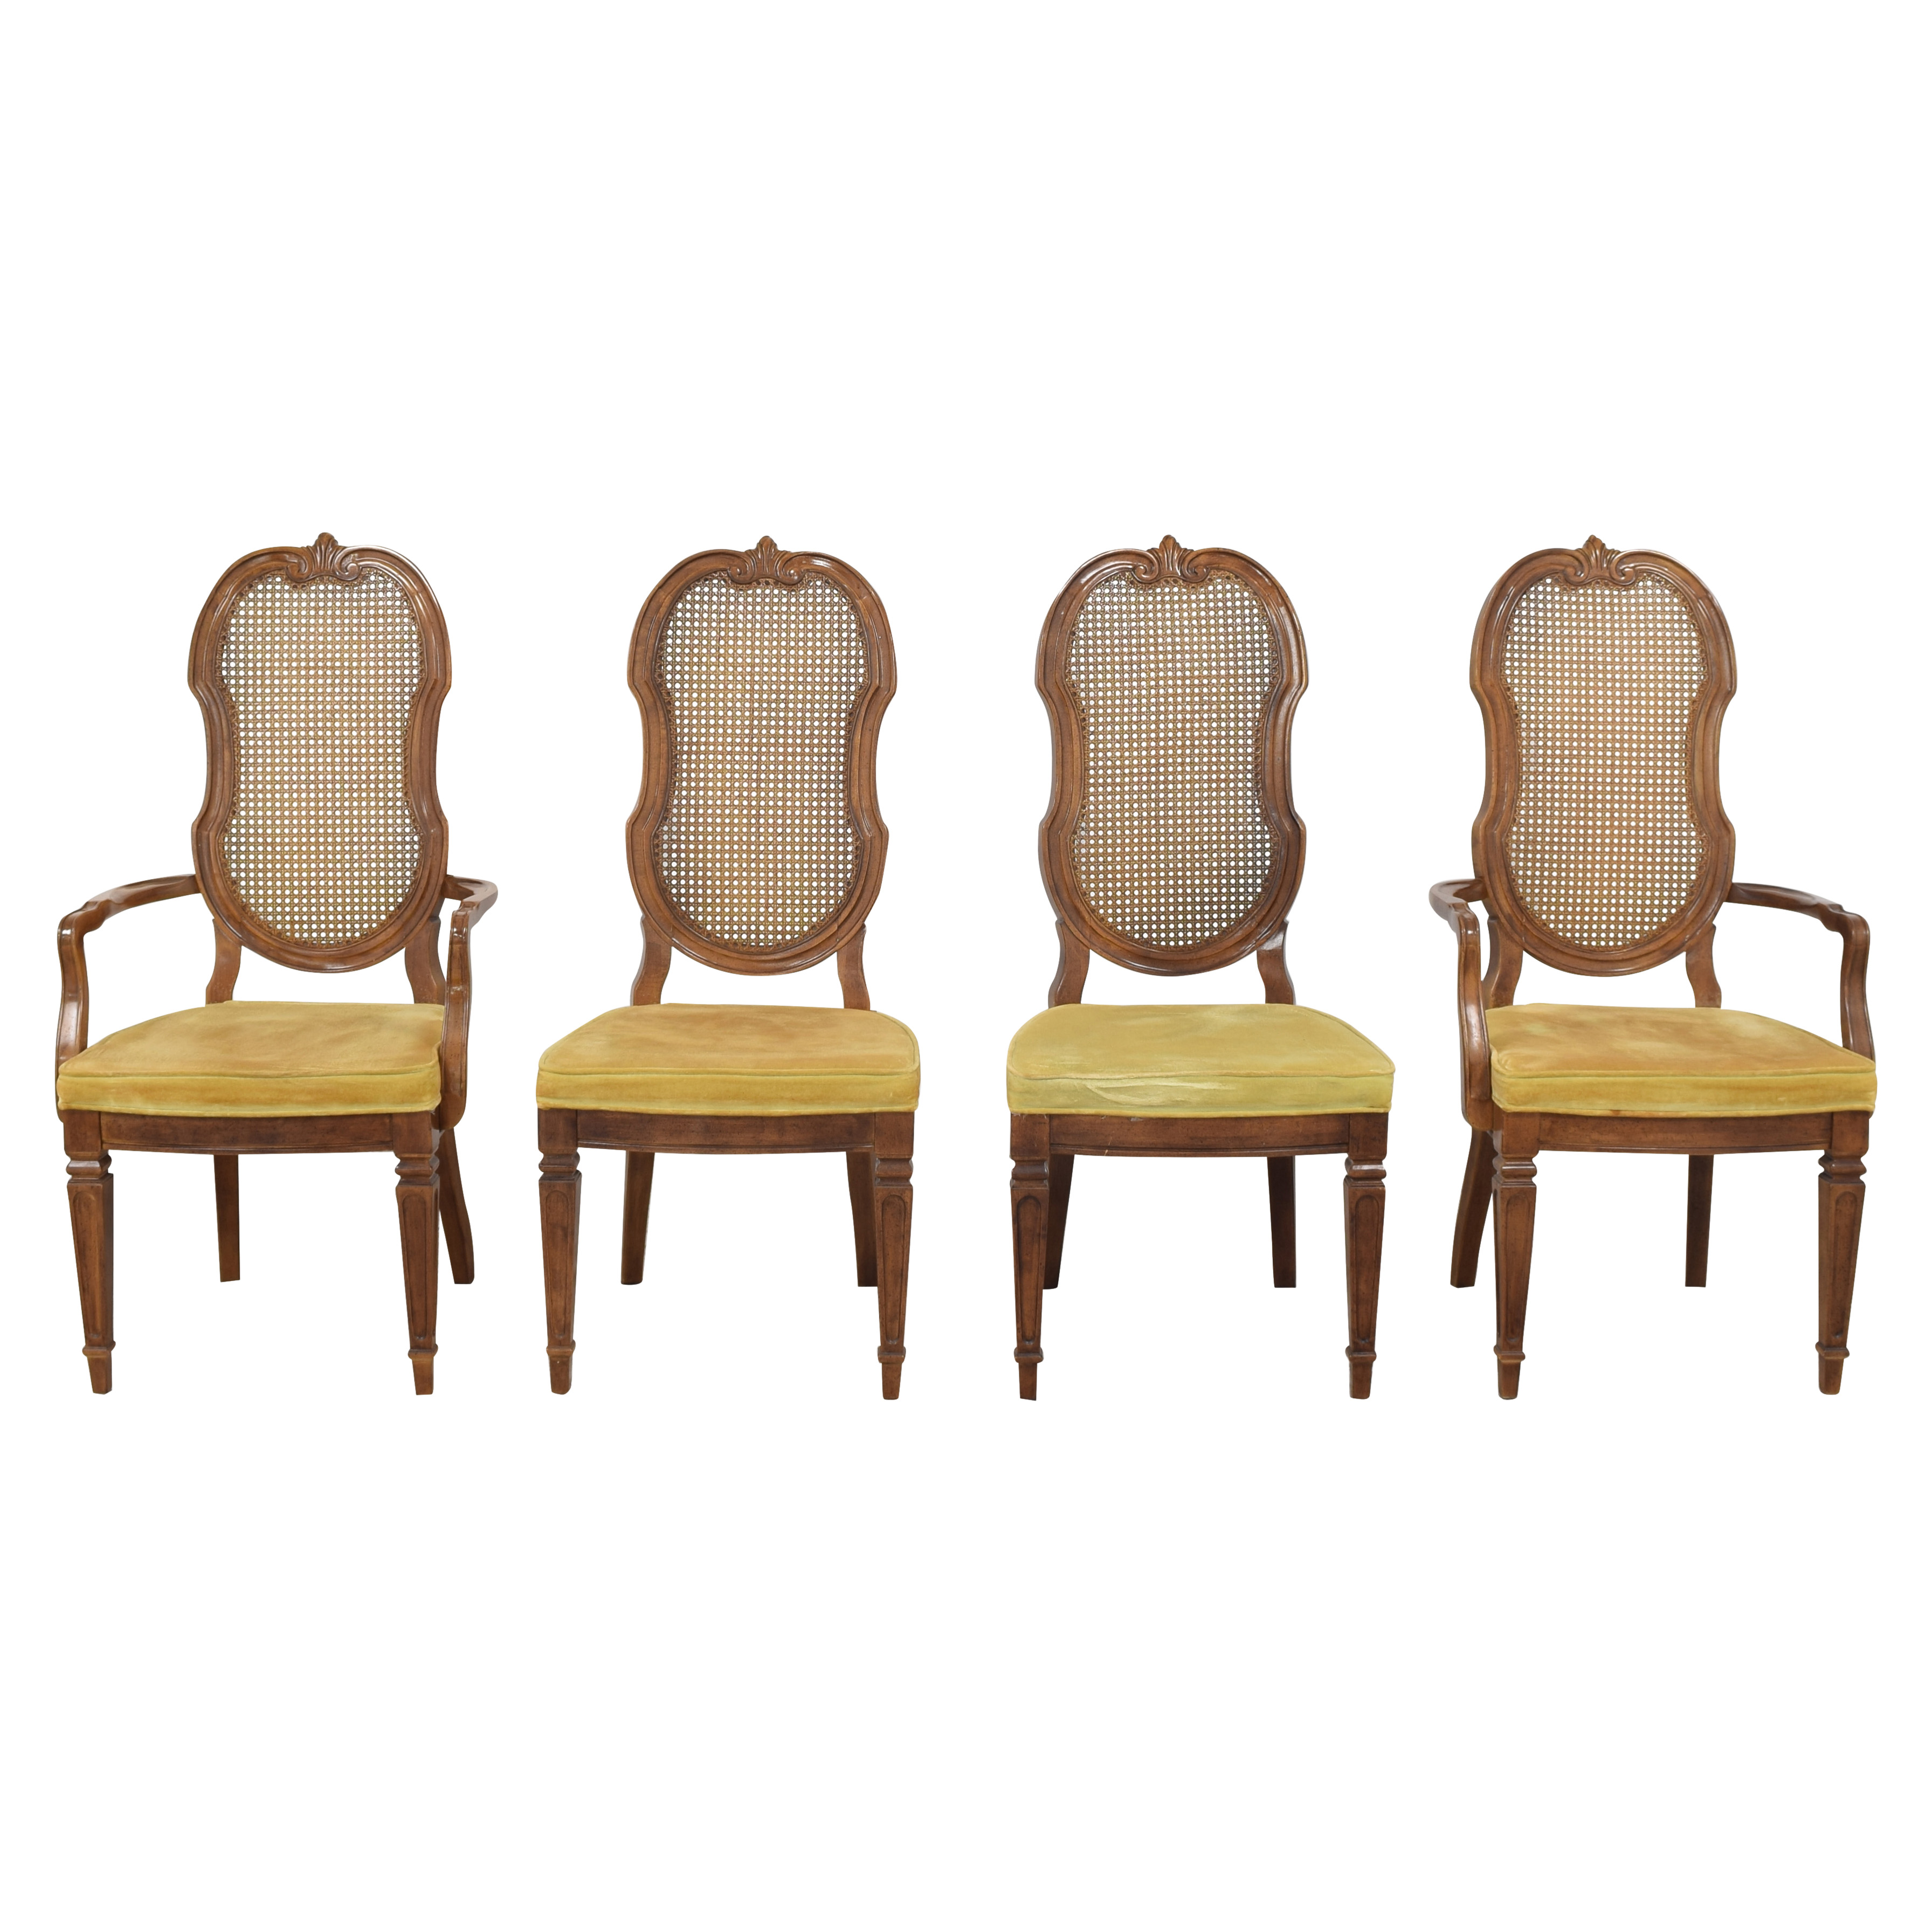 Thomasville Thomasville Italian Provincial Style Cane Back Dining Chairs second hand